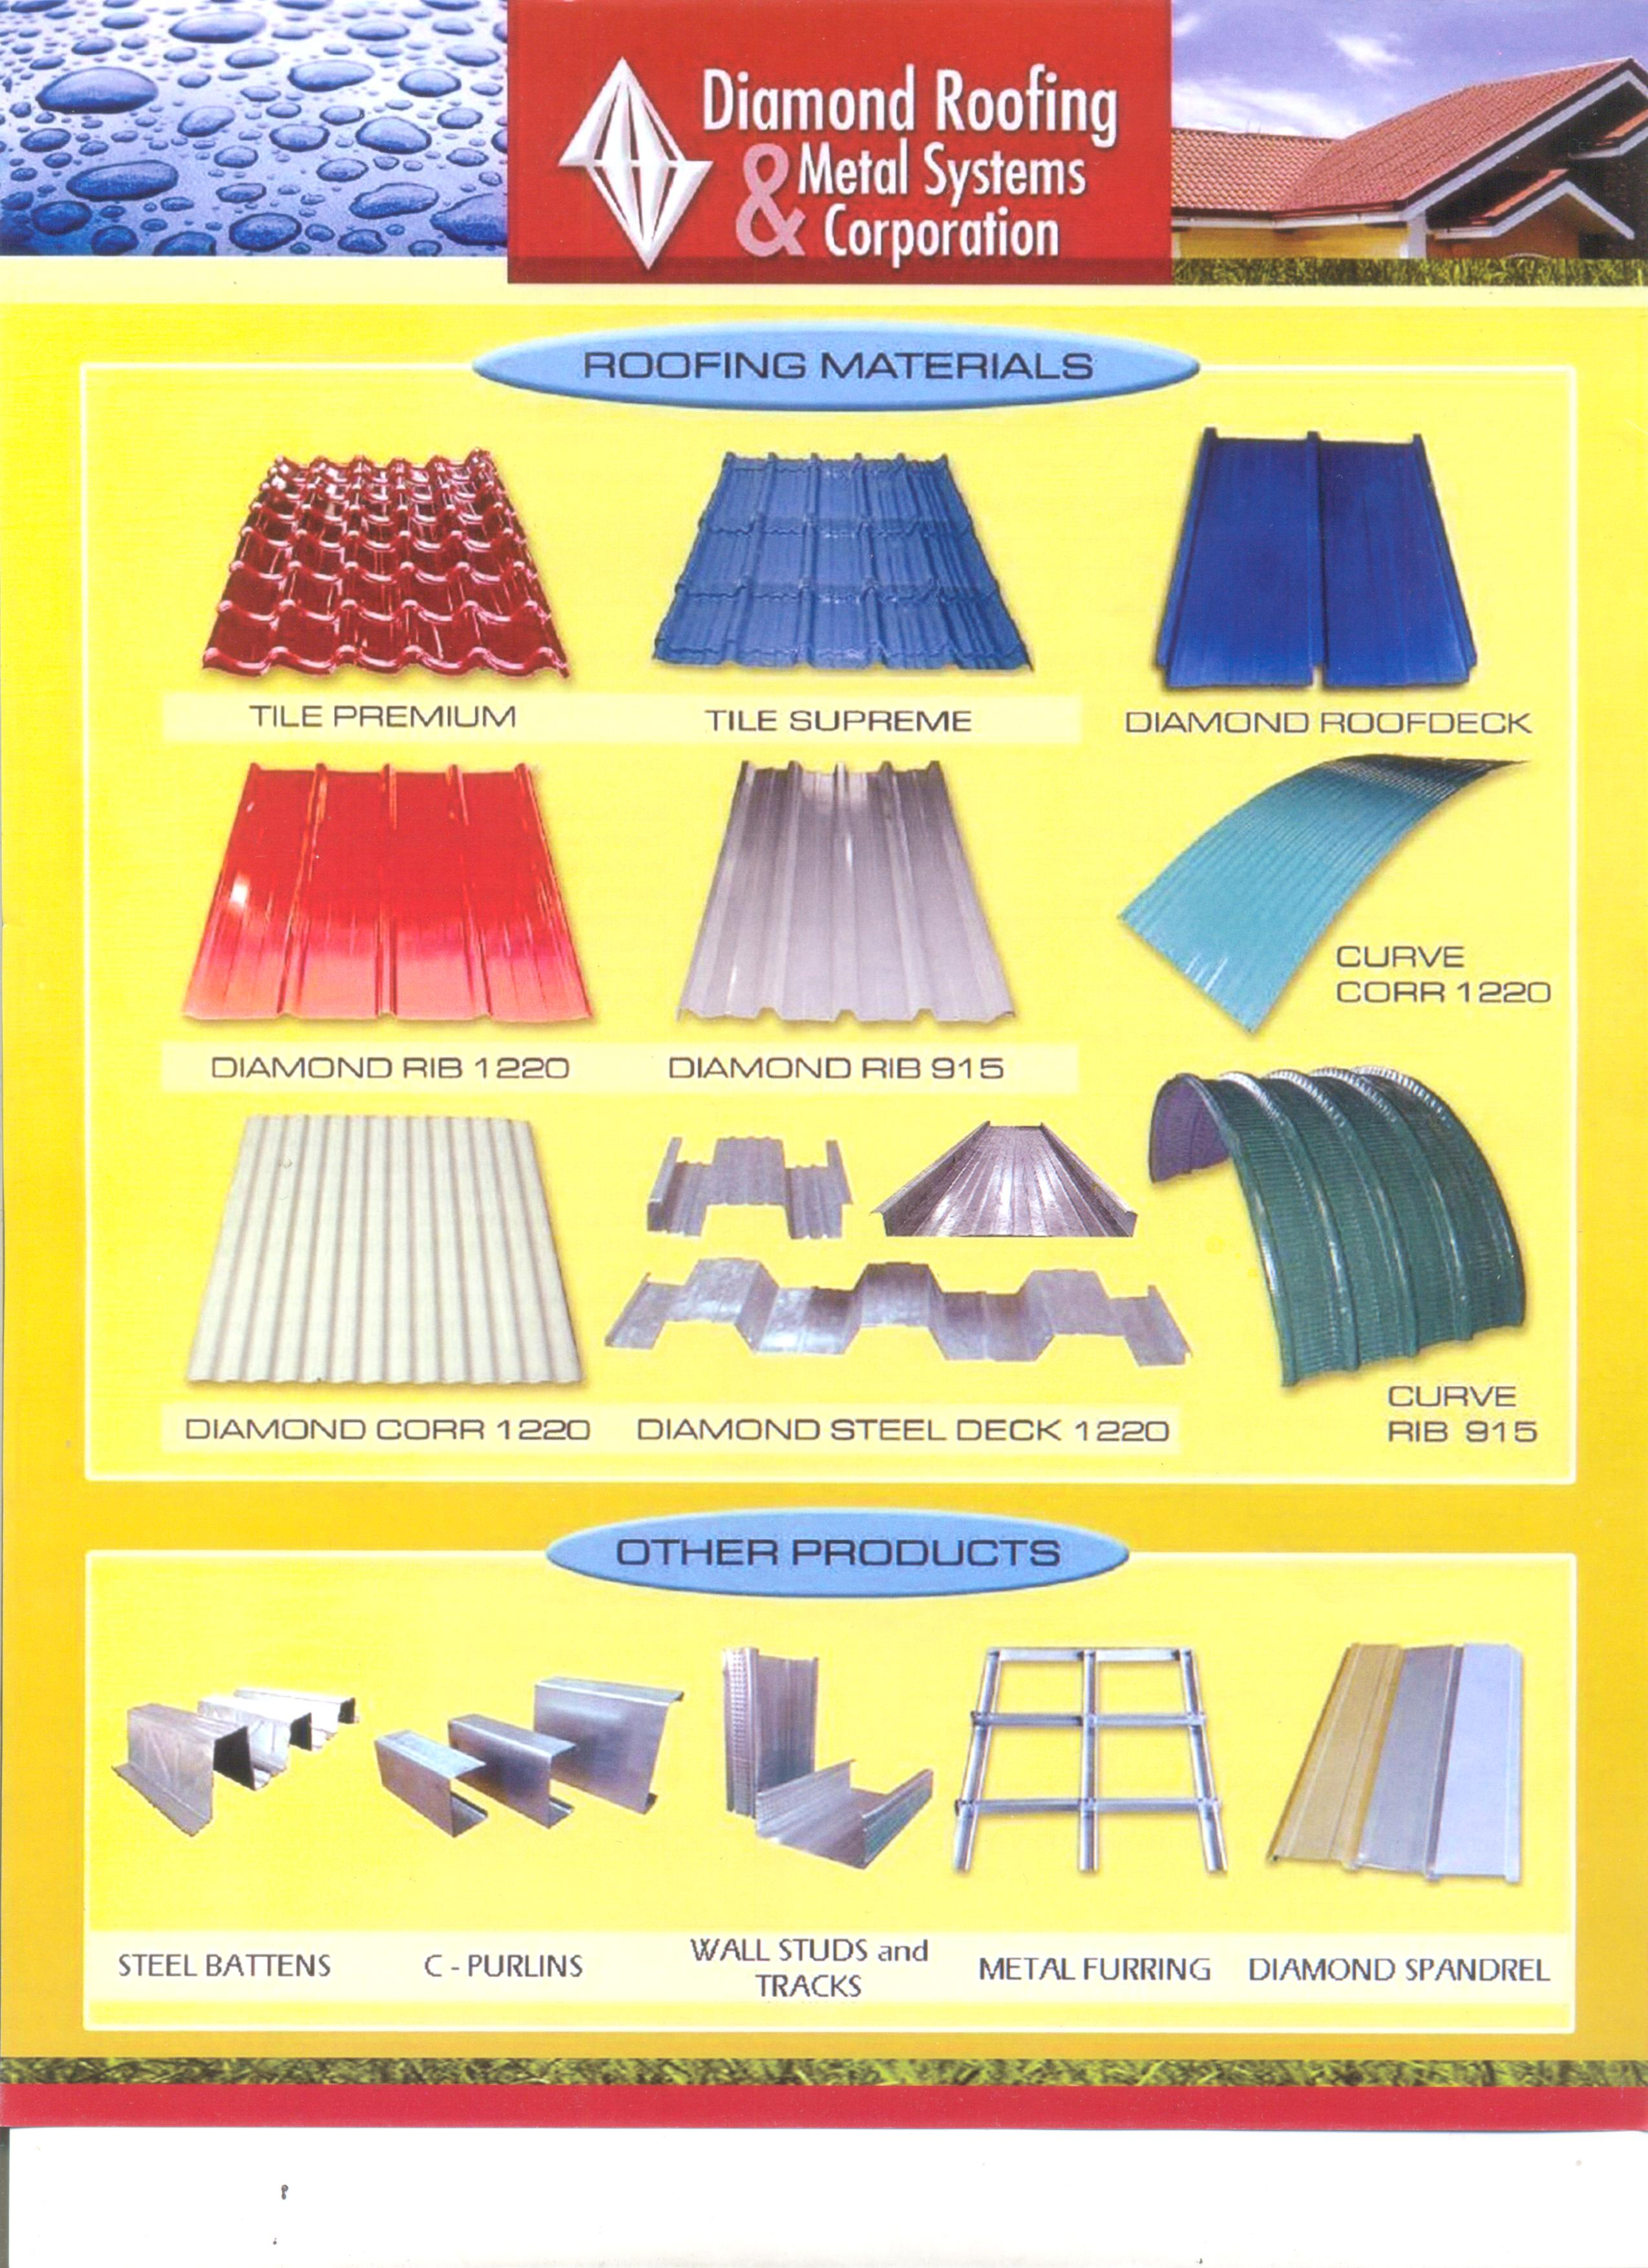 Diamond Roofing Metal Systems Corporation